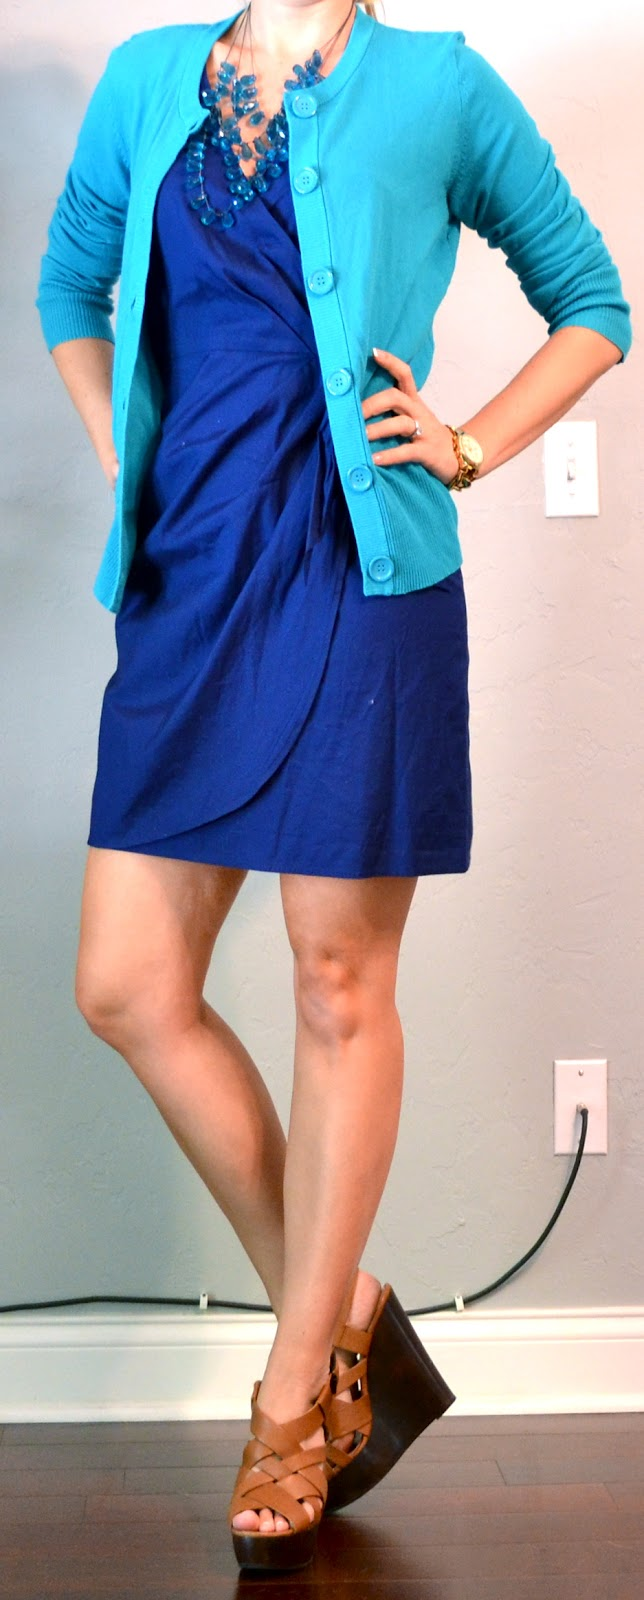 421c5cb09f outfit post  blue dress